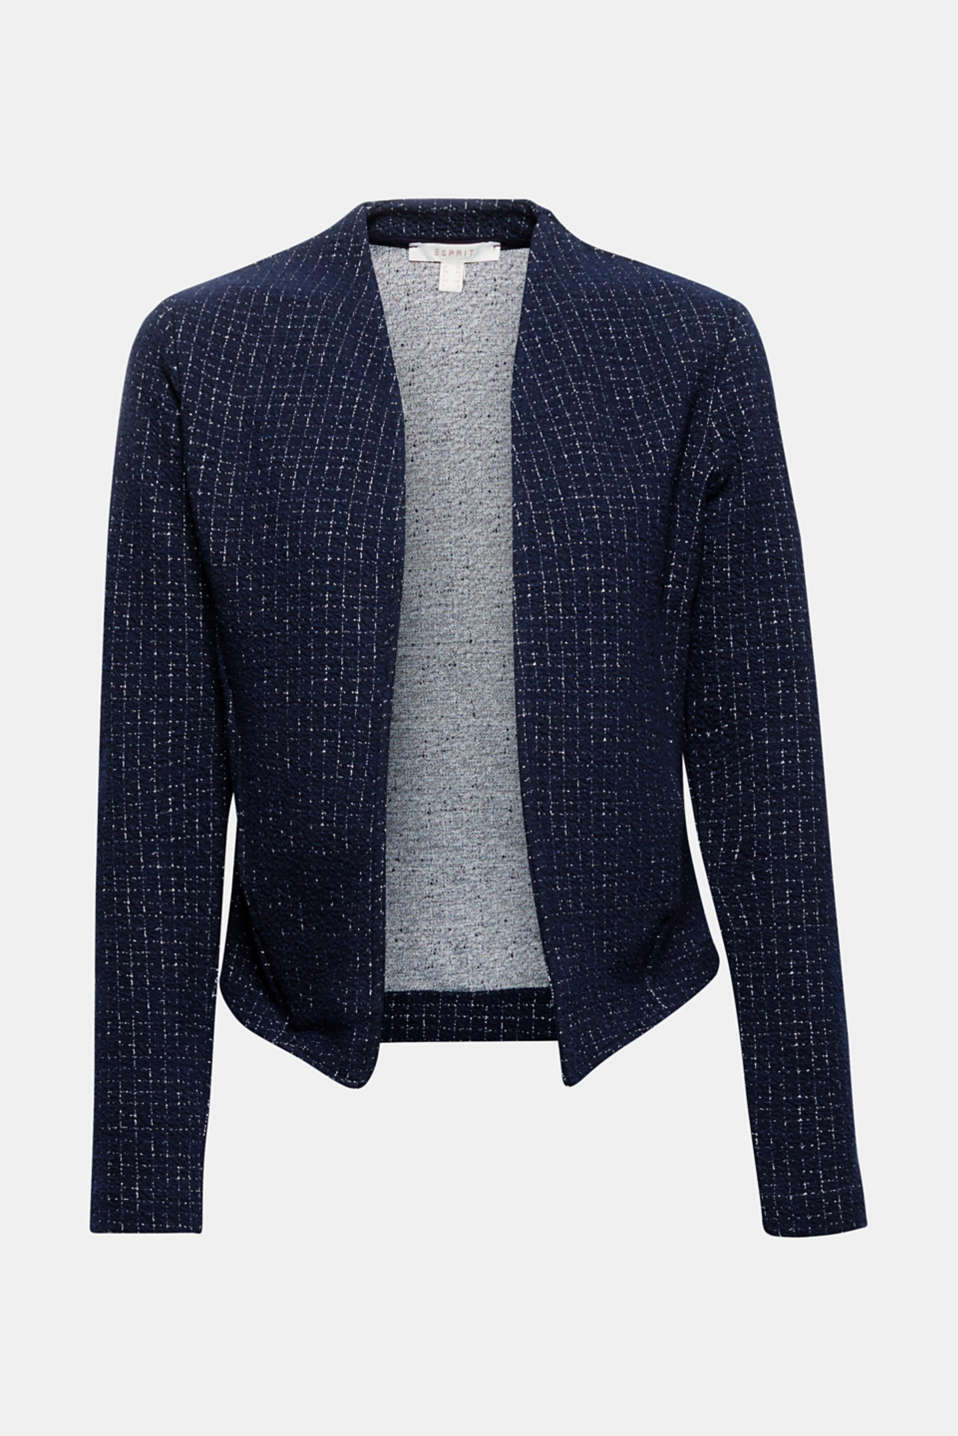 Jackets indoor knitted, NAVY, detail image number 8